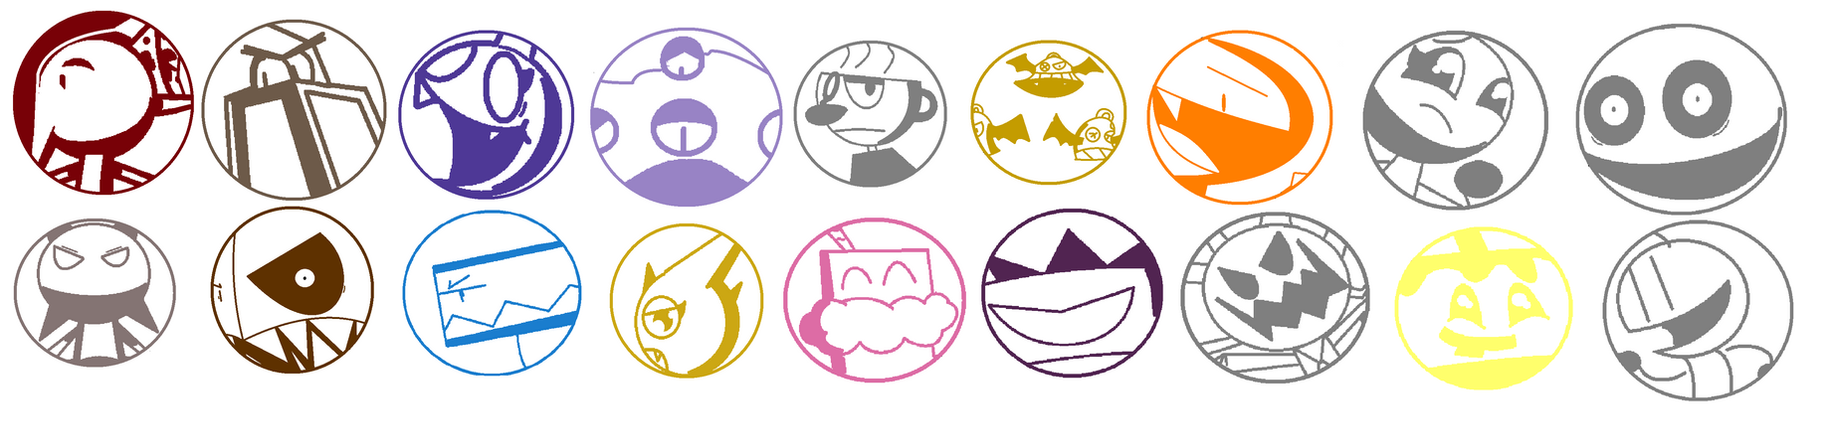 Dream friend icons ChampionShip by AarenAnimations